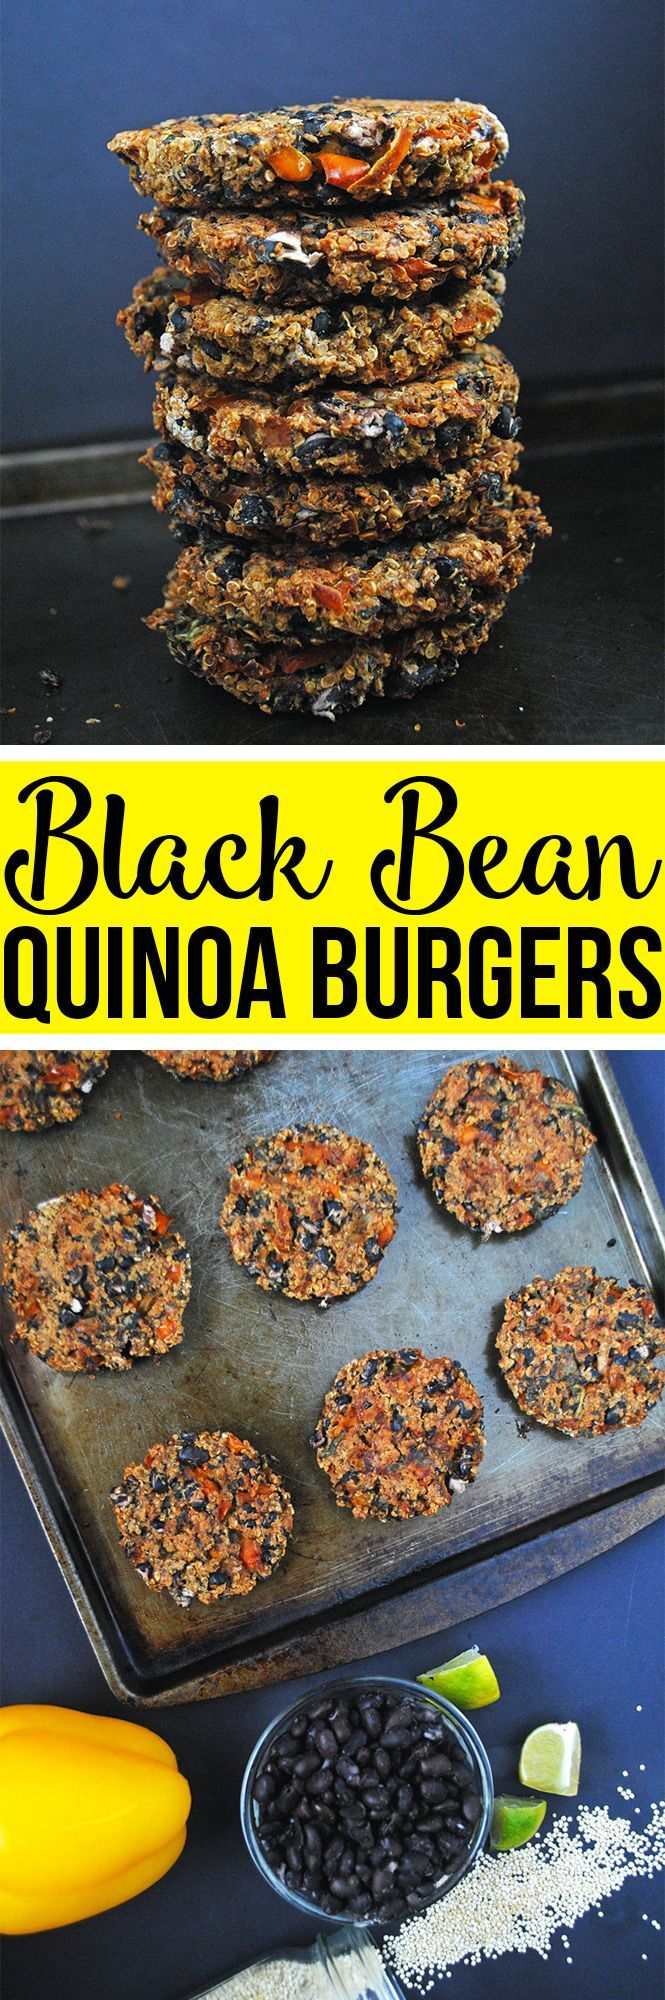 Easy baked black bean quinoa veggie burgers that are vegan & gluten-free, filled with plant protein, and perfect for end-of-the-summer cook-ups.